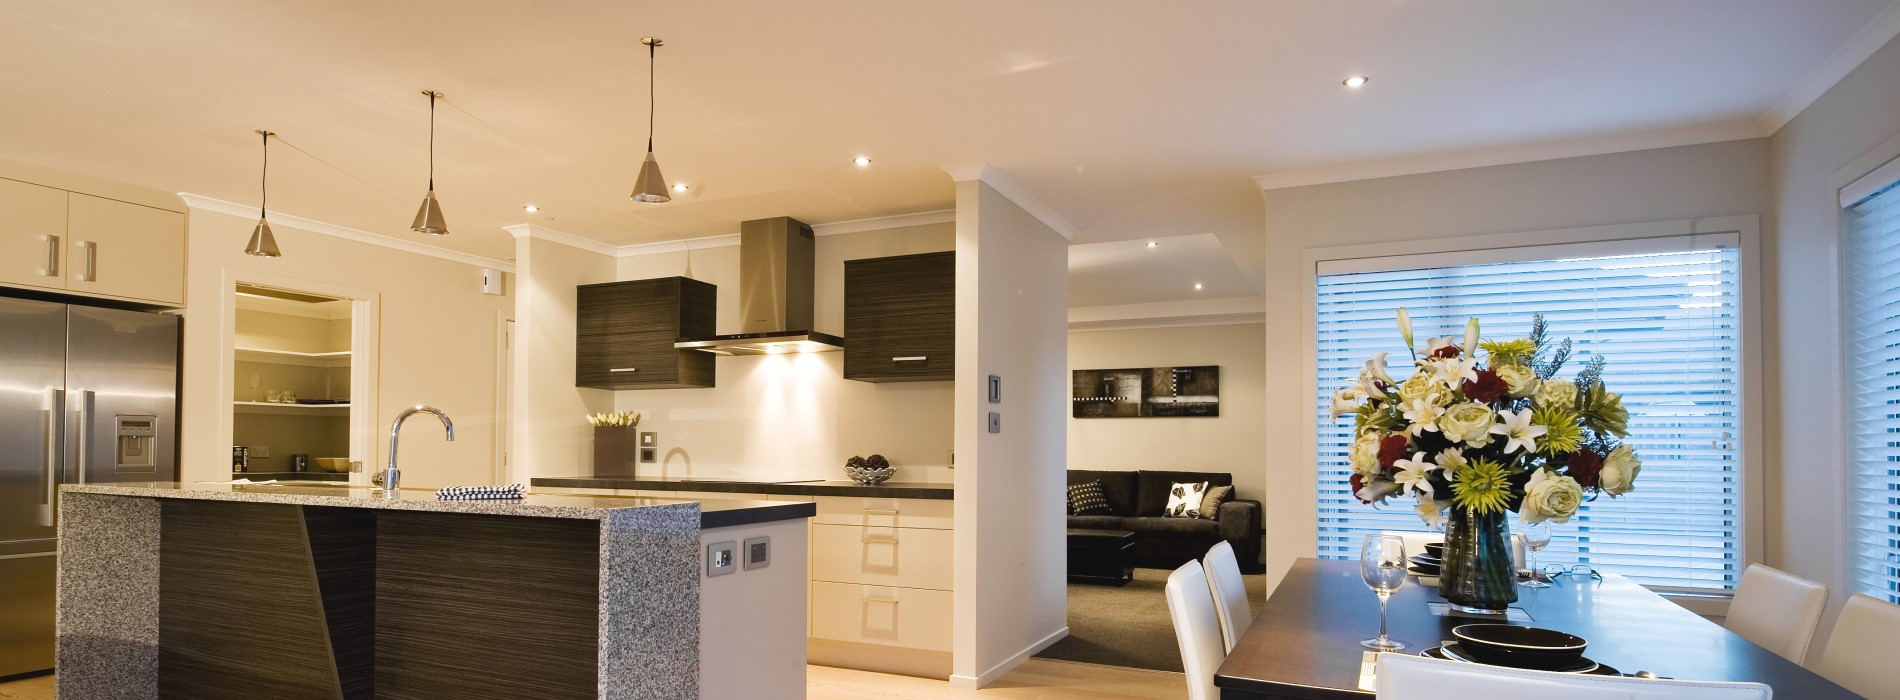 Domestic Lighting - Electricians in Worksop